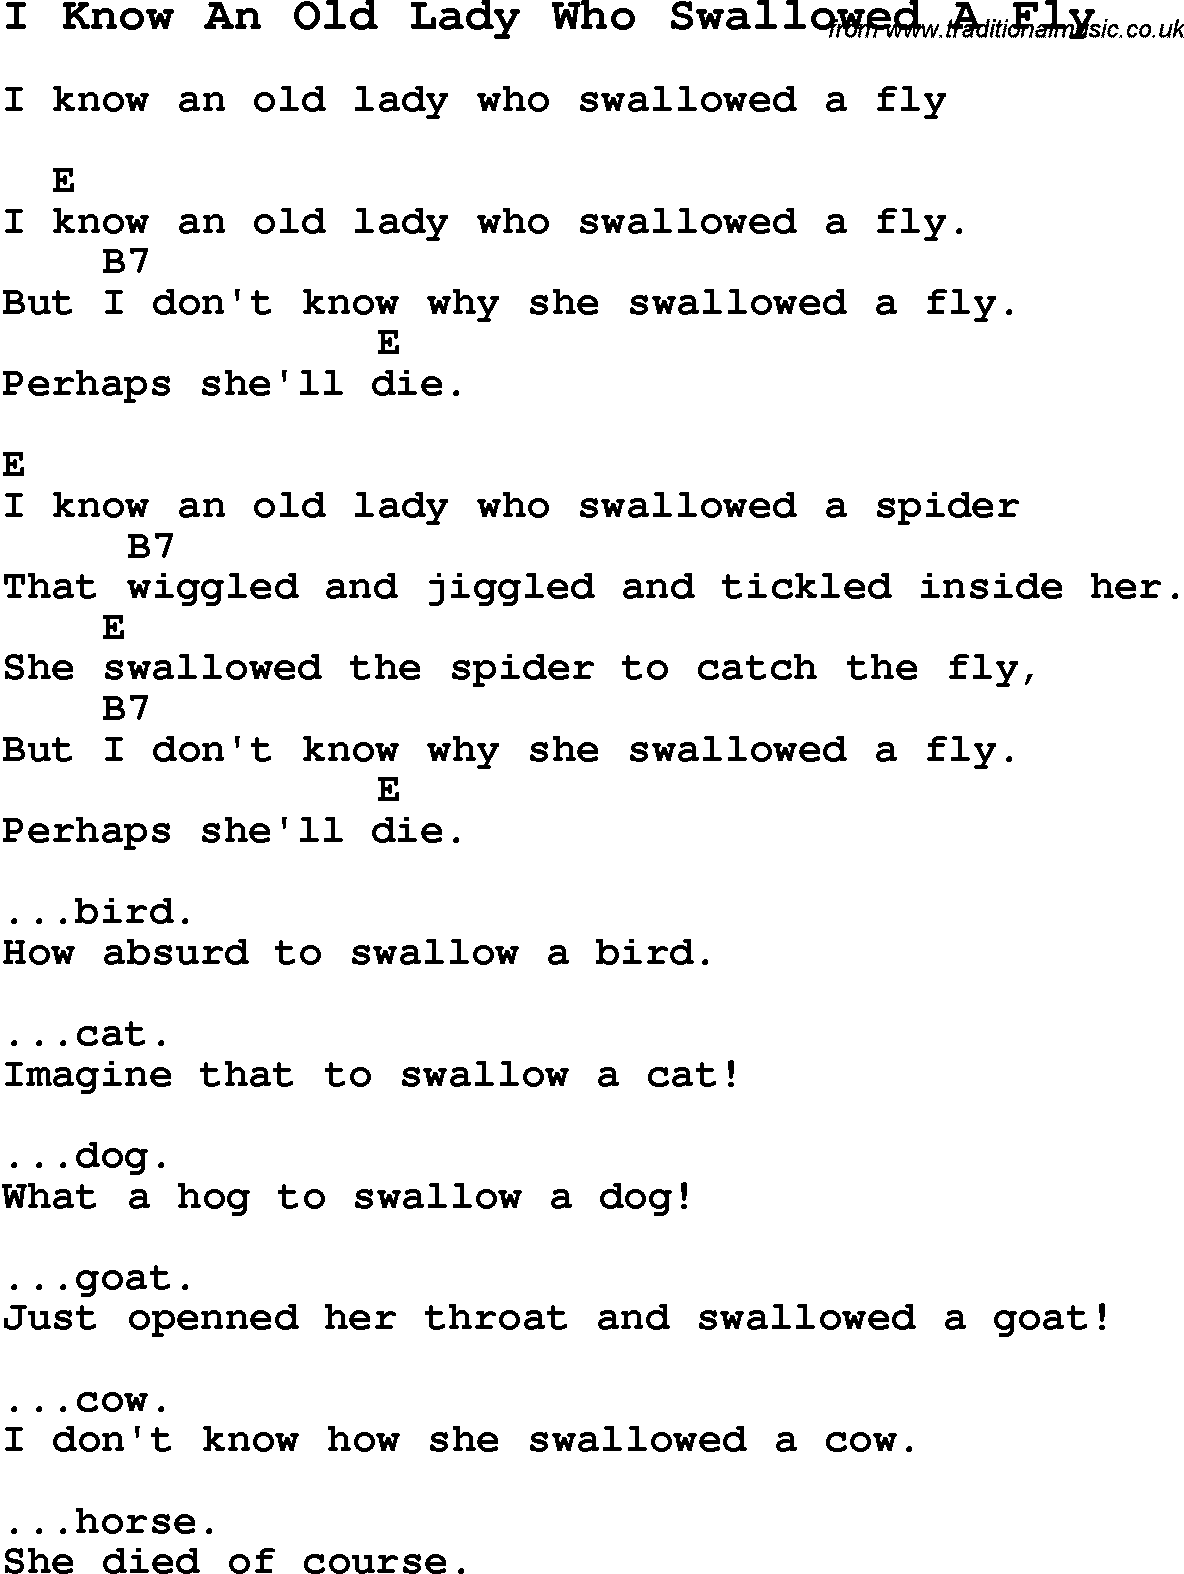 Flipper - The Old Lady Who Swallowed A Fly Lyrics ...